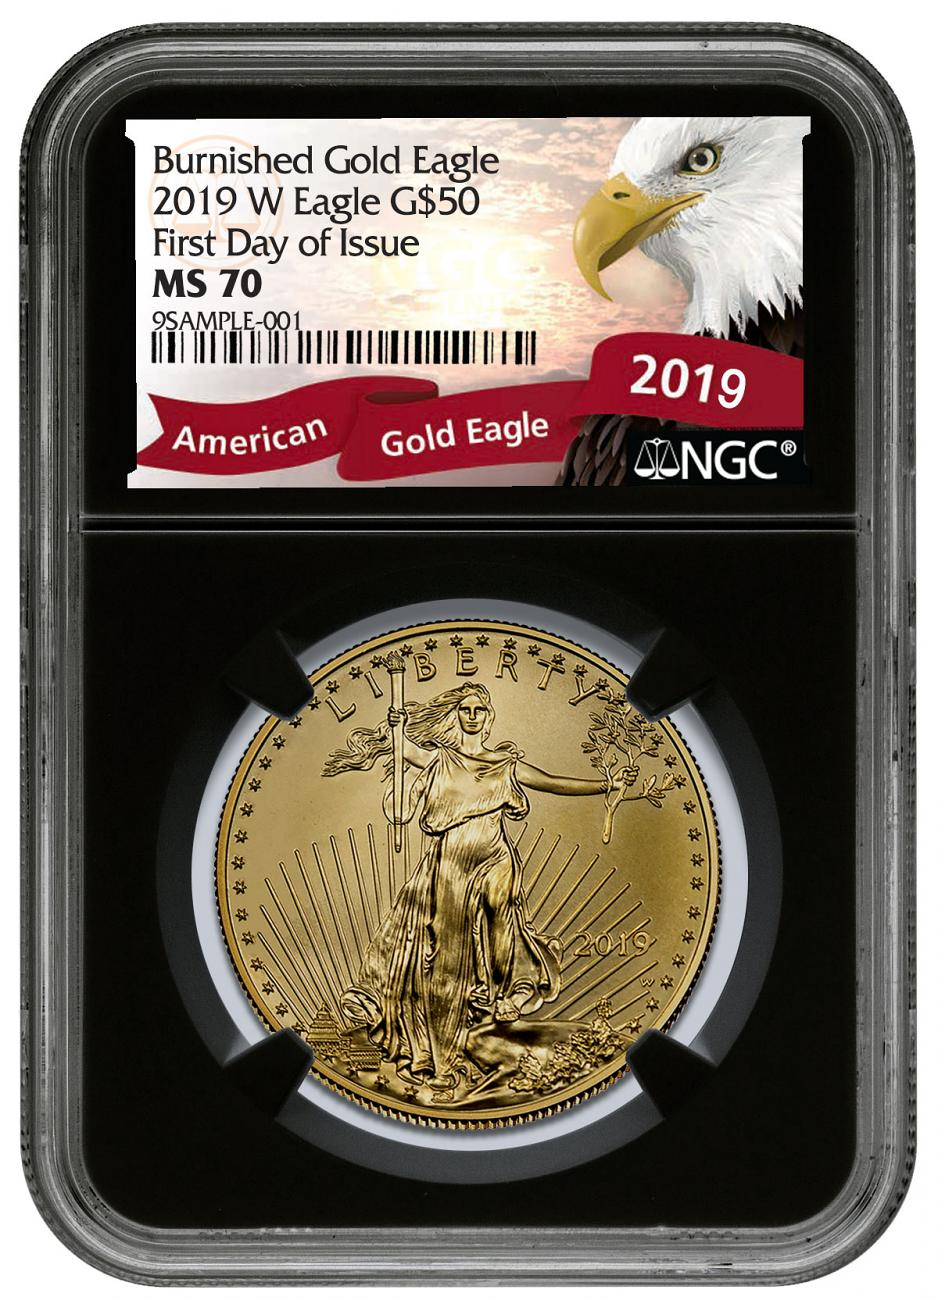 2019-W 1 oz Burnished Gold American Eagle $50 NGC MS70 FDI Black Core Holder Exclusive Eagle Label